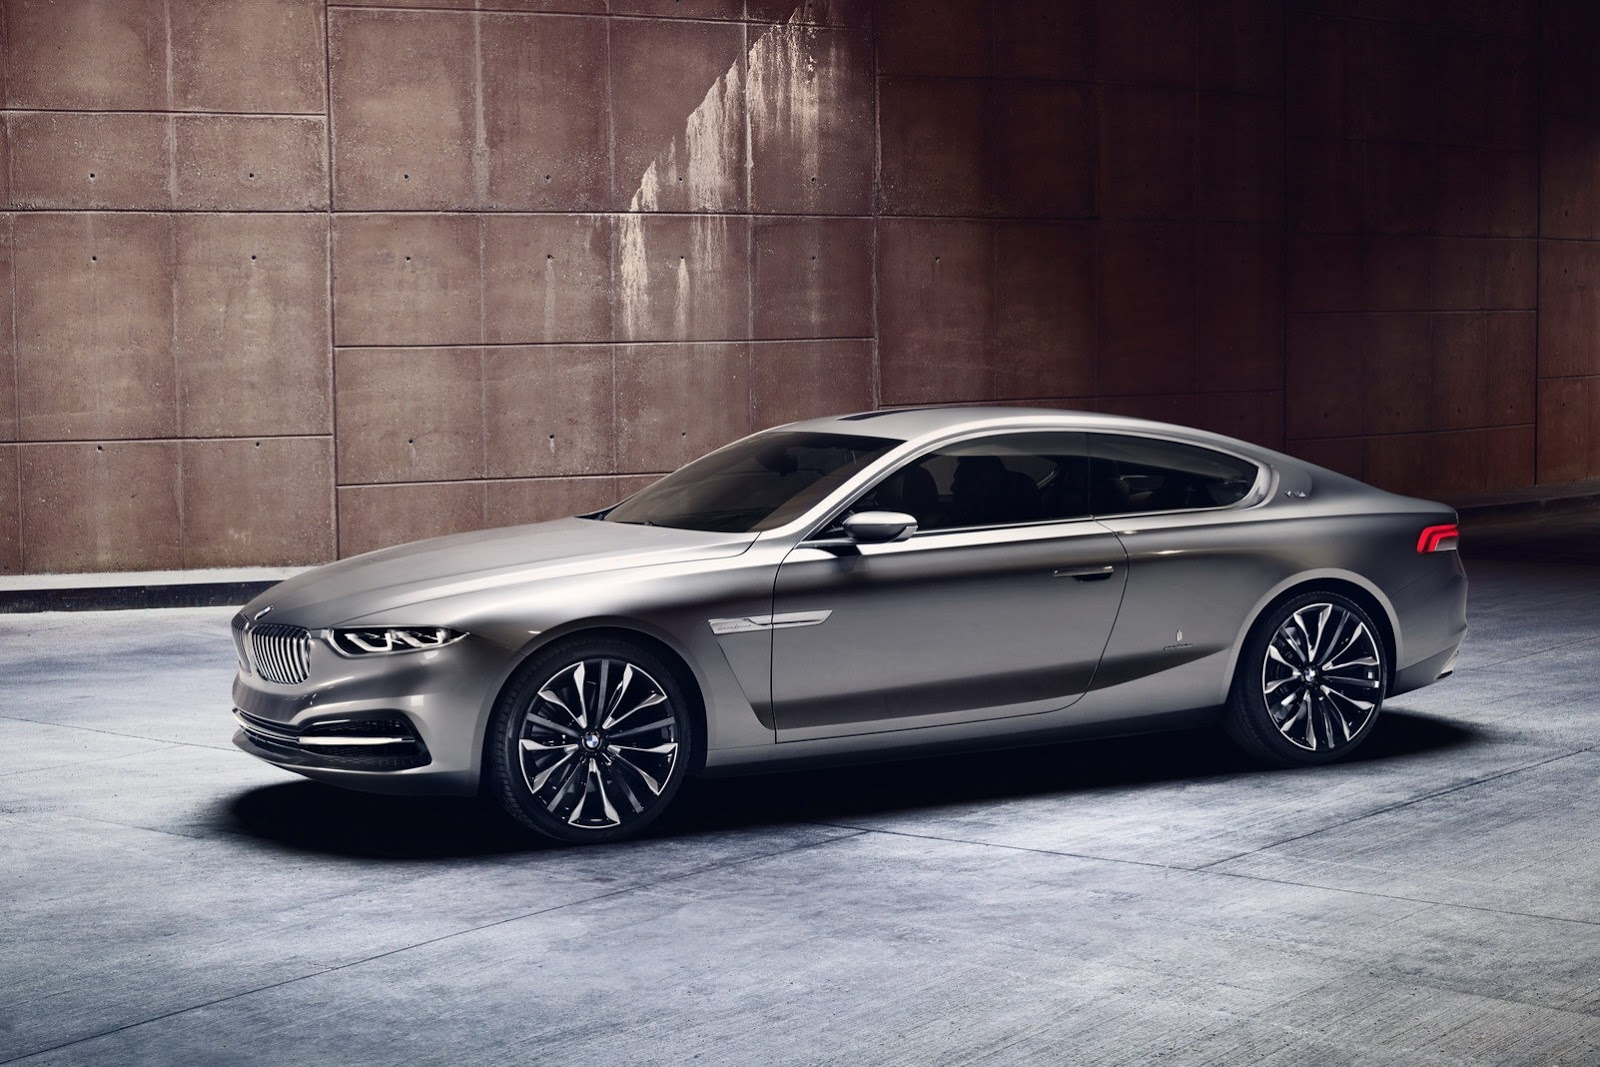 bmw working on new 8 series flagship coupe report says carscoops. Black Bedroom Furniture Sets. Home Design Ideas